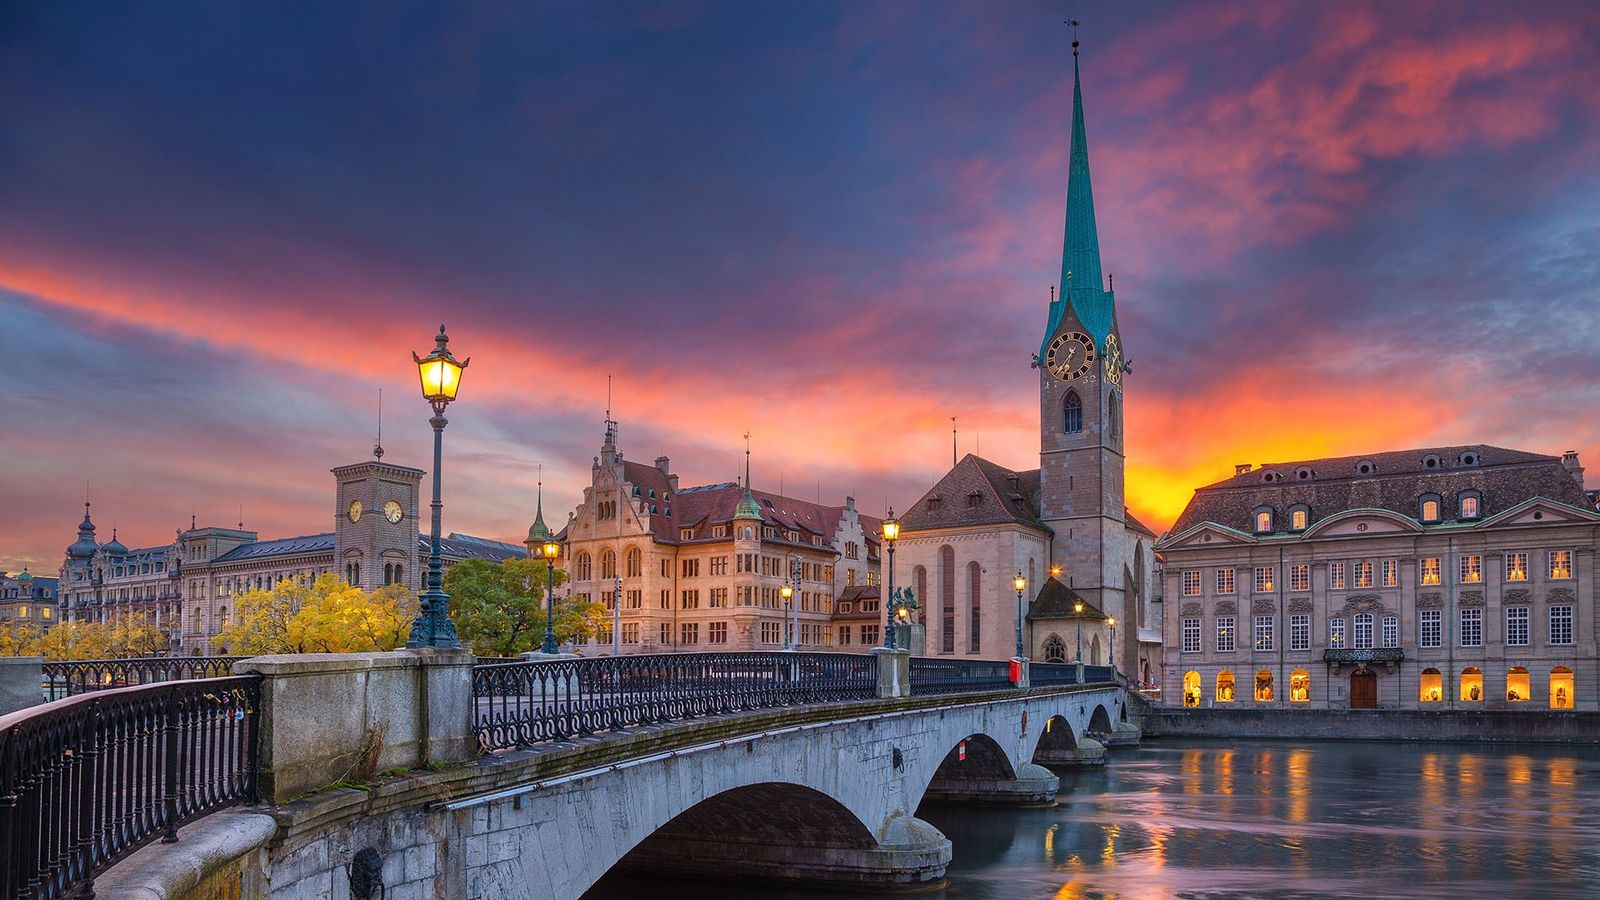 Zurich's mountain-backed metropolis is being invigorated by a flurry of bar openings, and Zurich is widely renowned ...